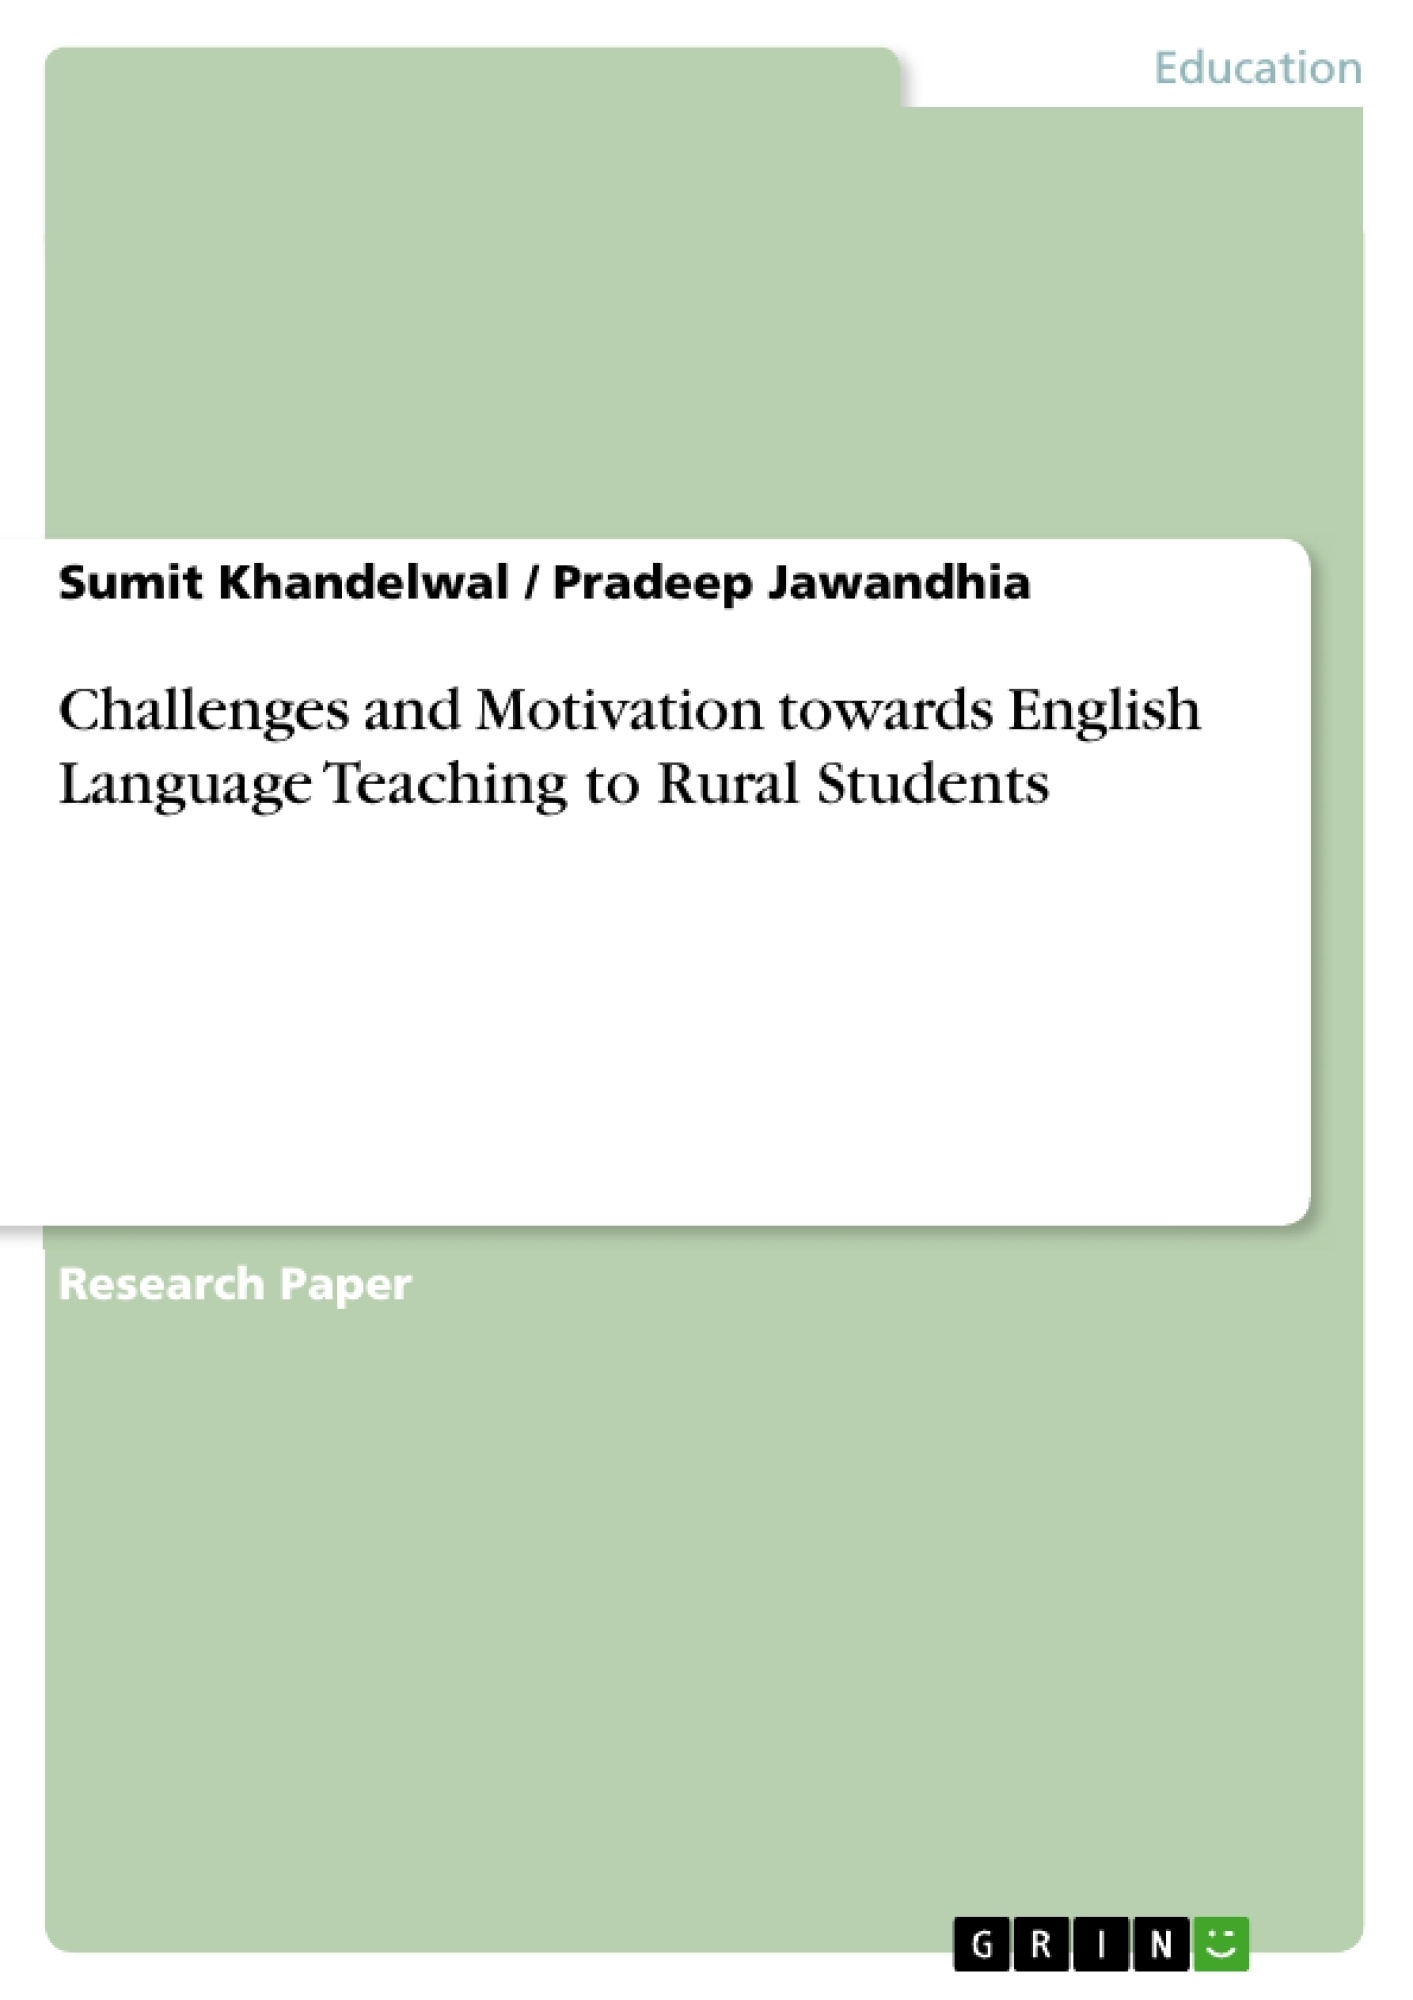 Title: Challenges and Motivation towards English Language Teaching to Rural Students